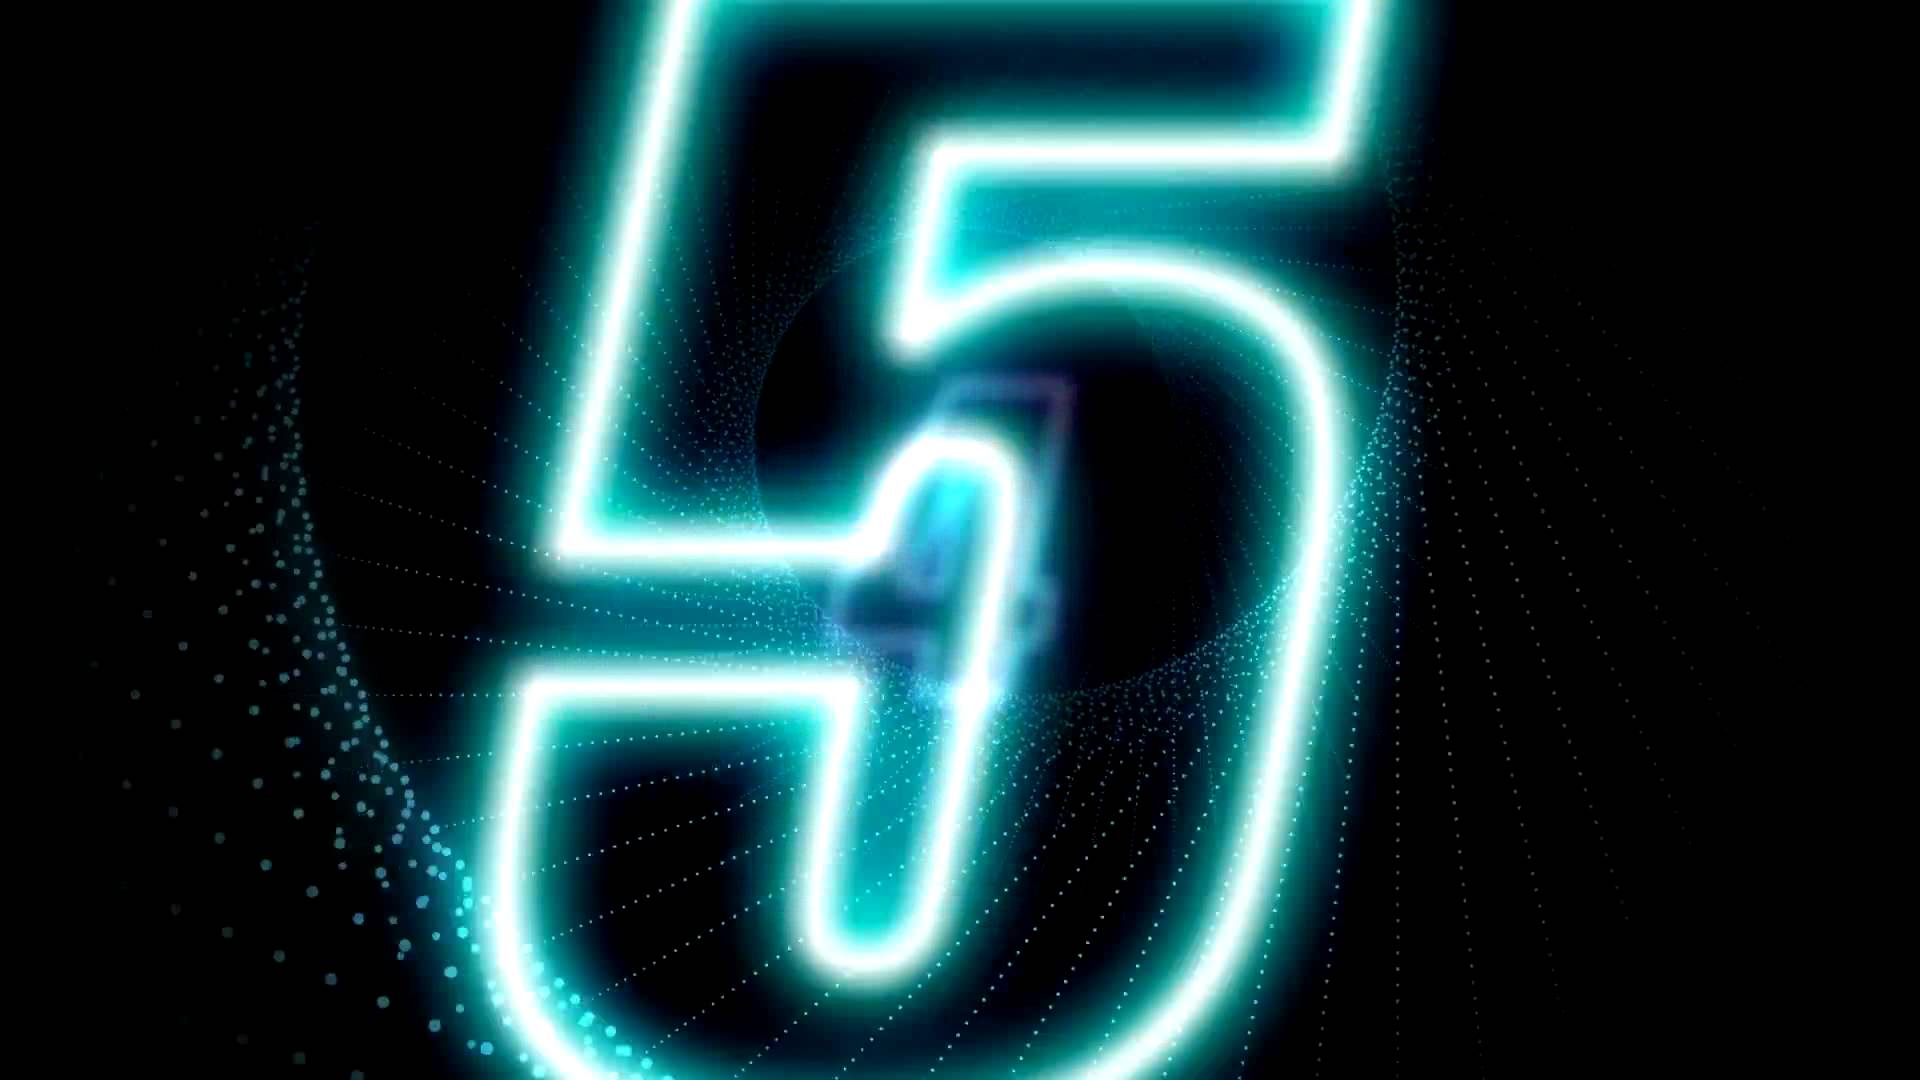 Countdown Wallpaper